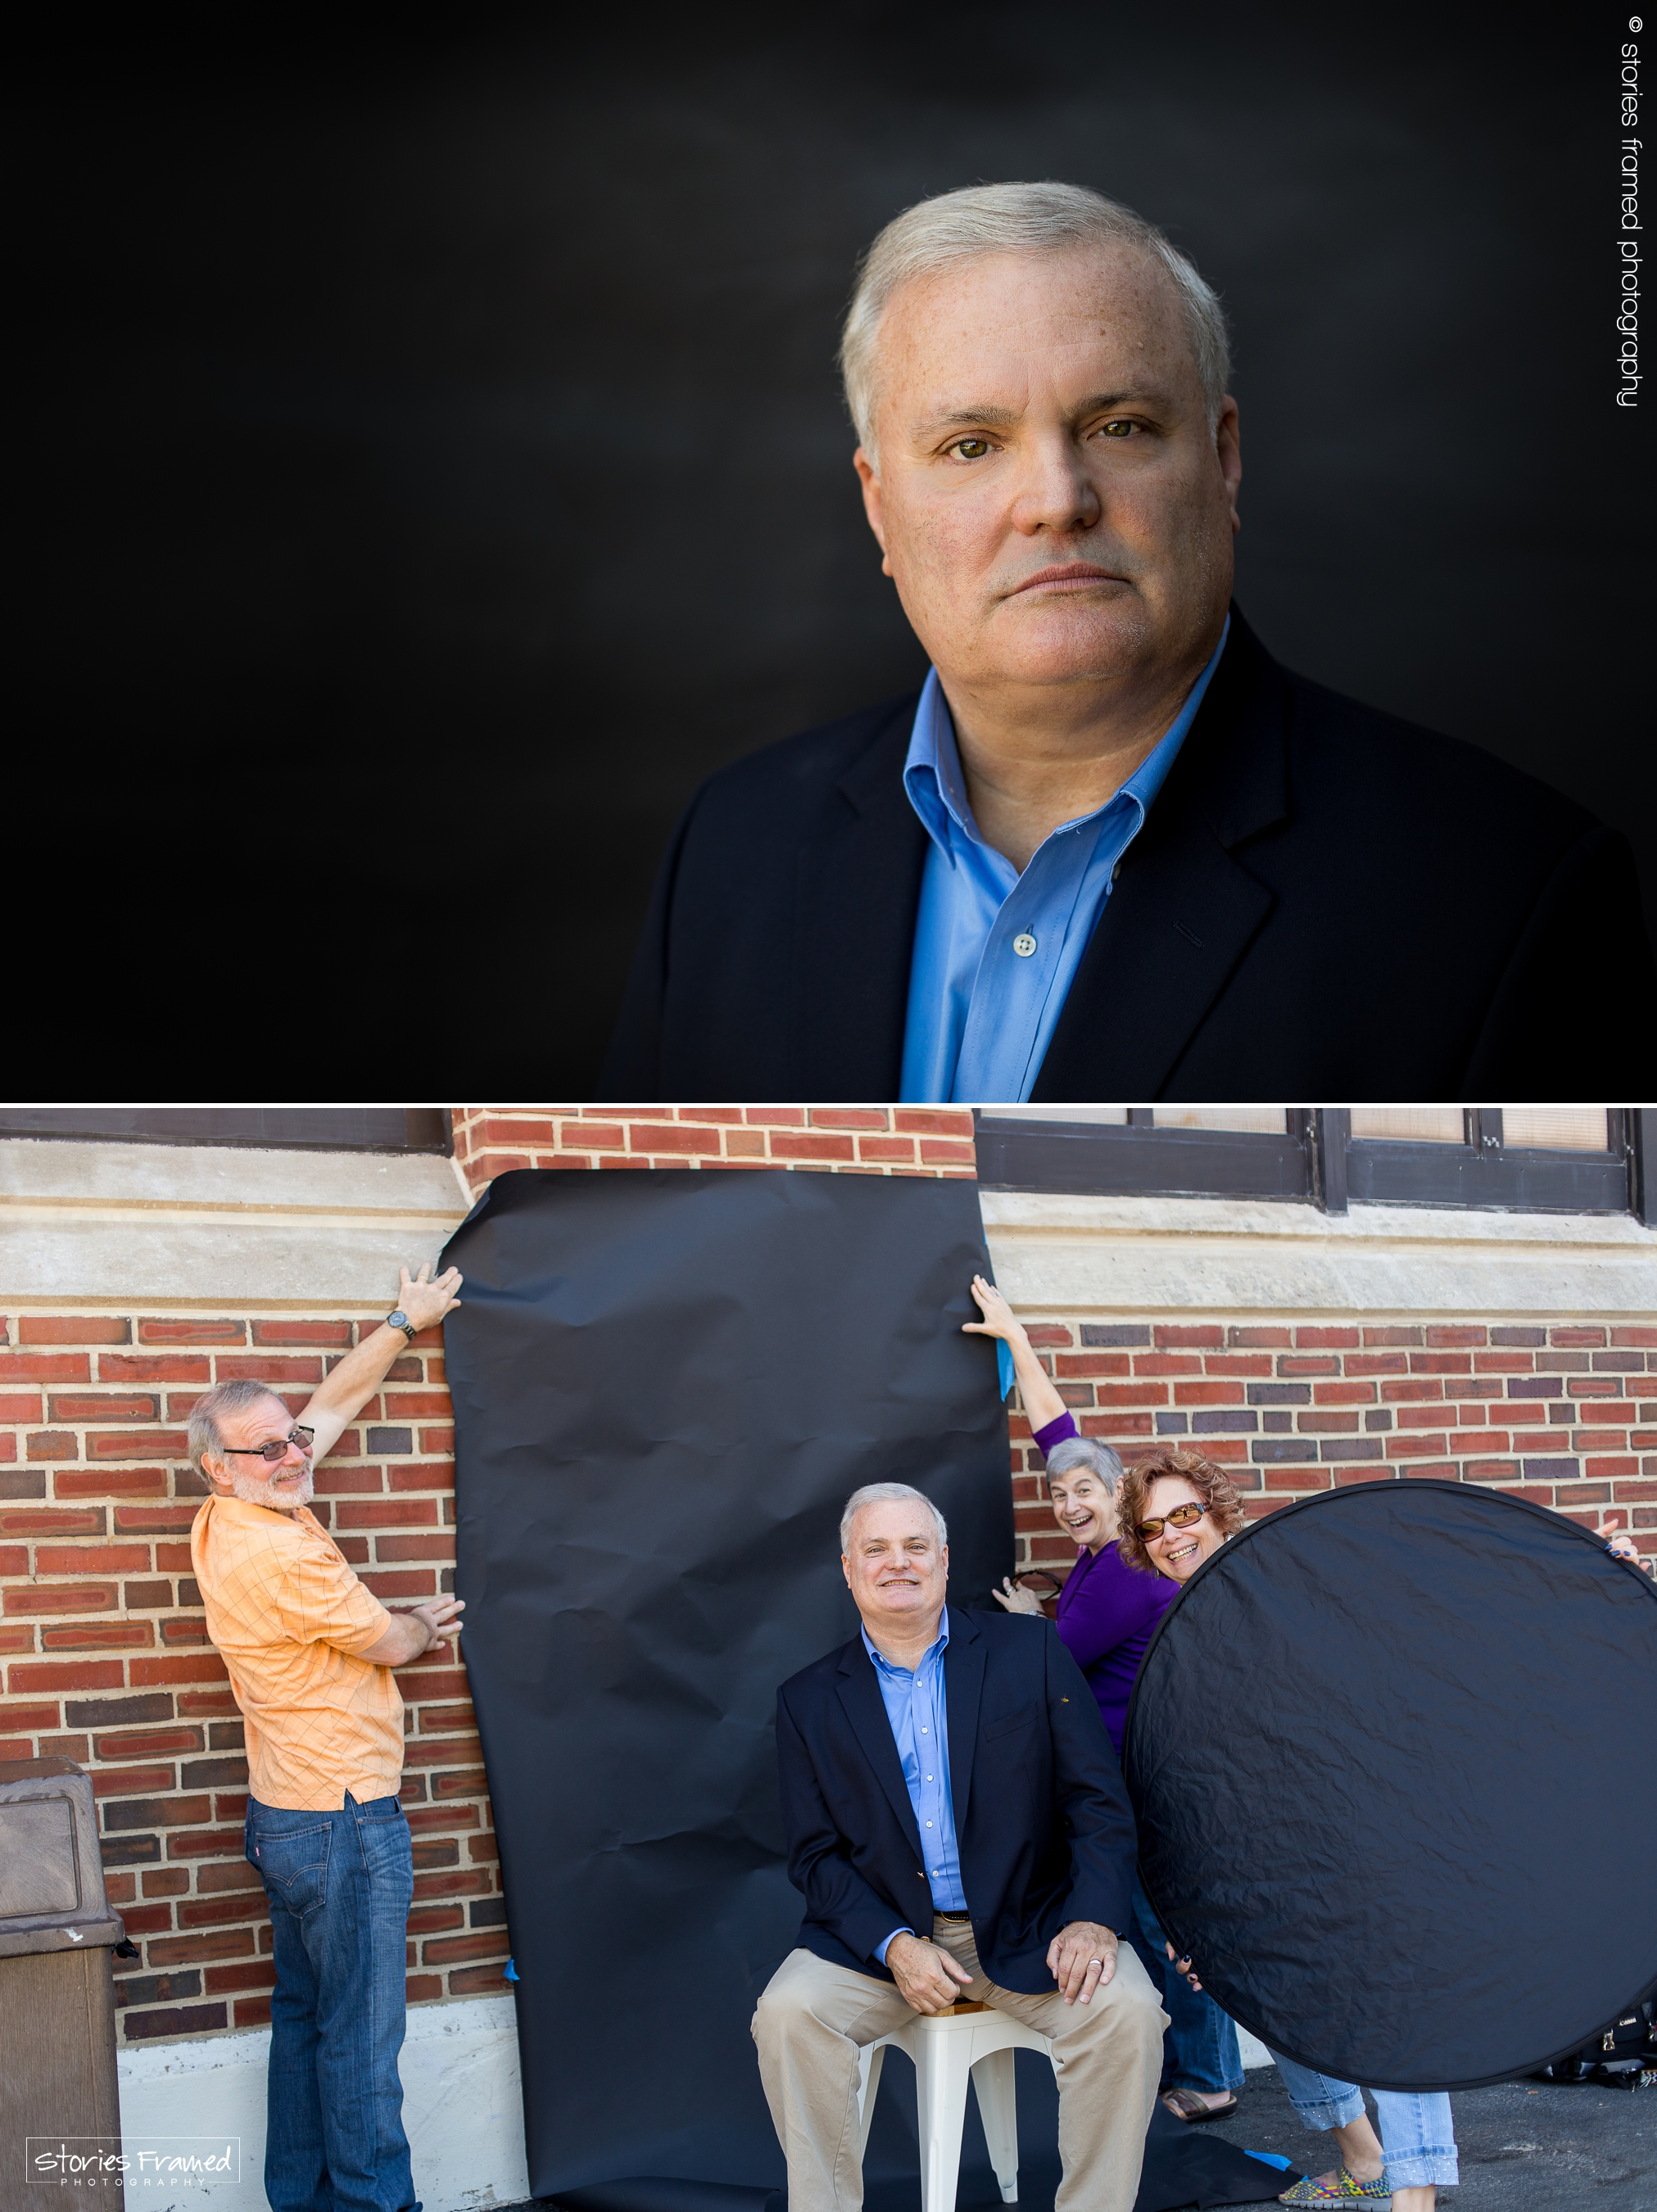 Stories Framed | author headshots | behind the scene | bts